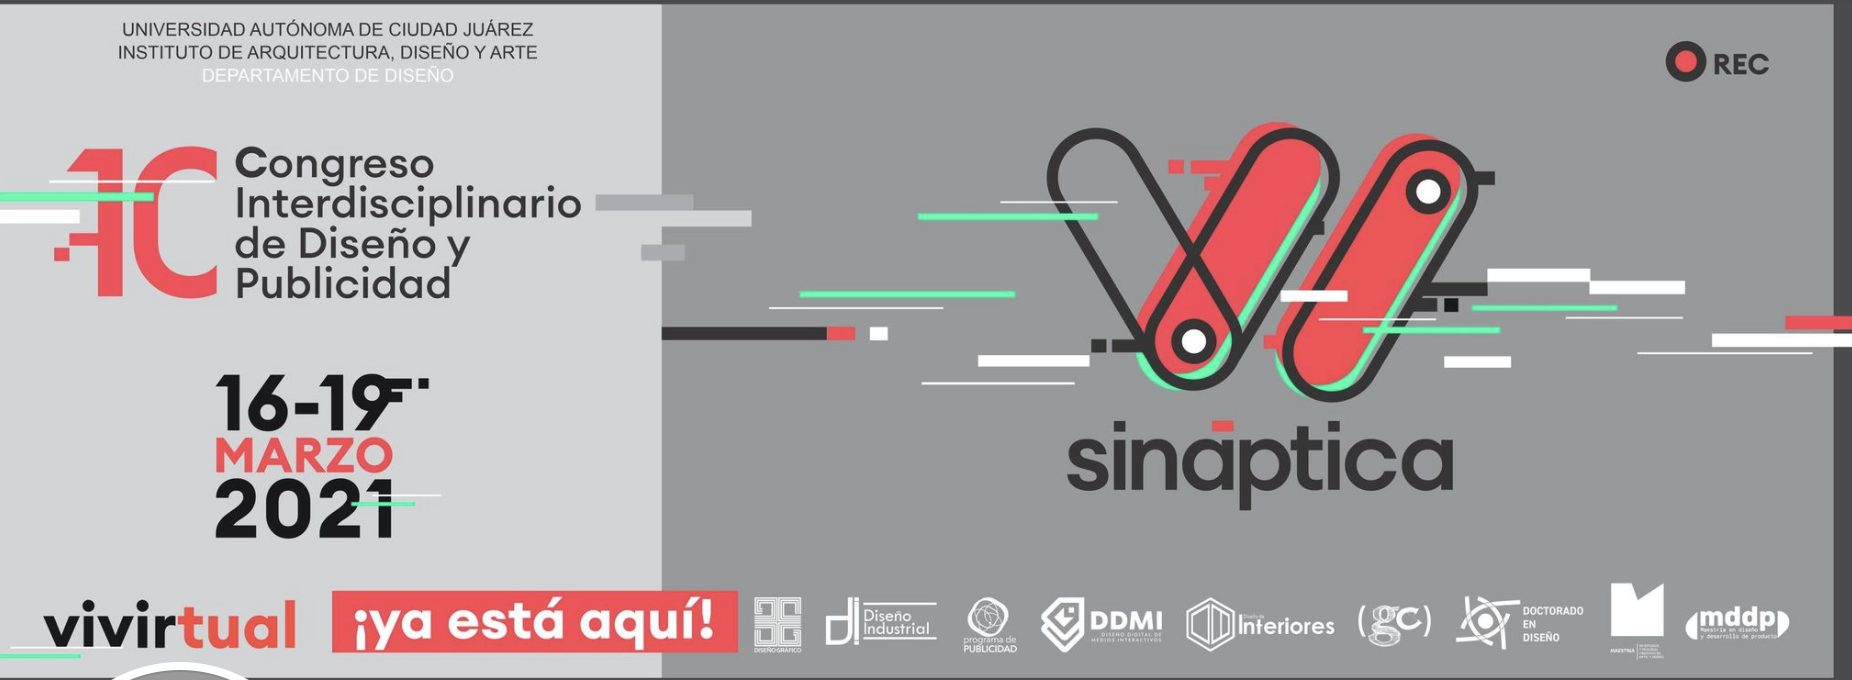 IADA invita a congreso Sináptica Virtual